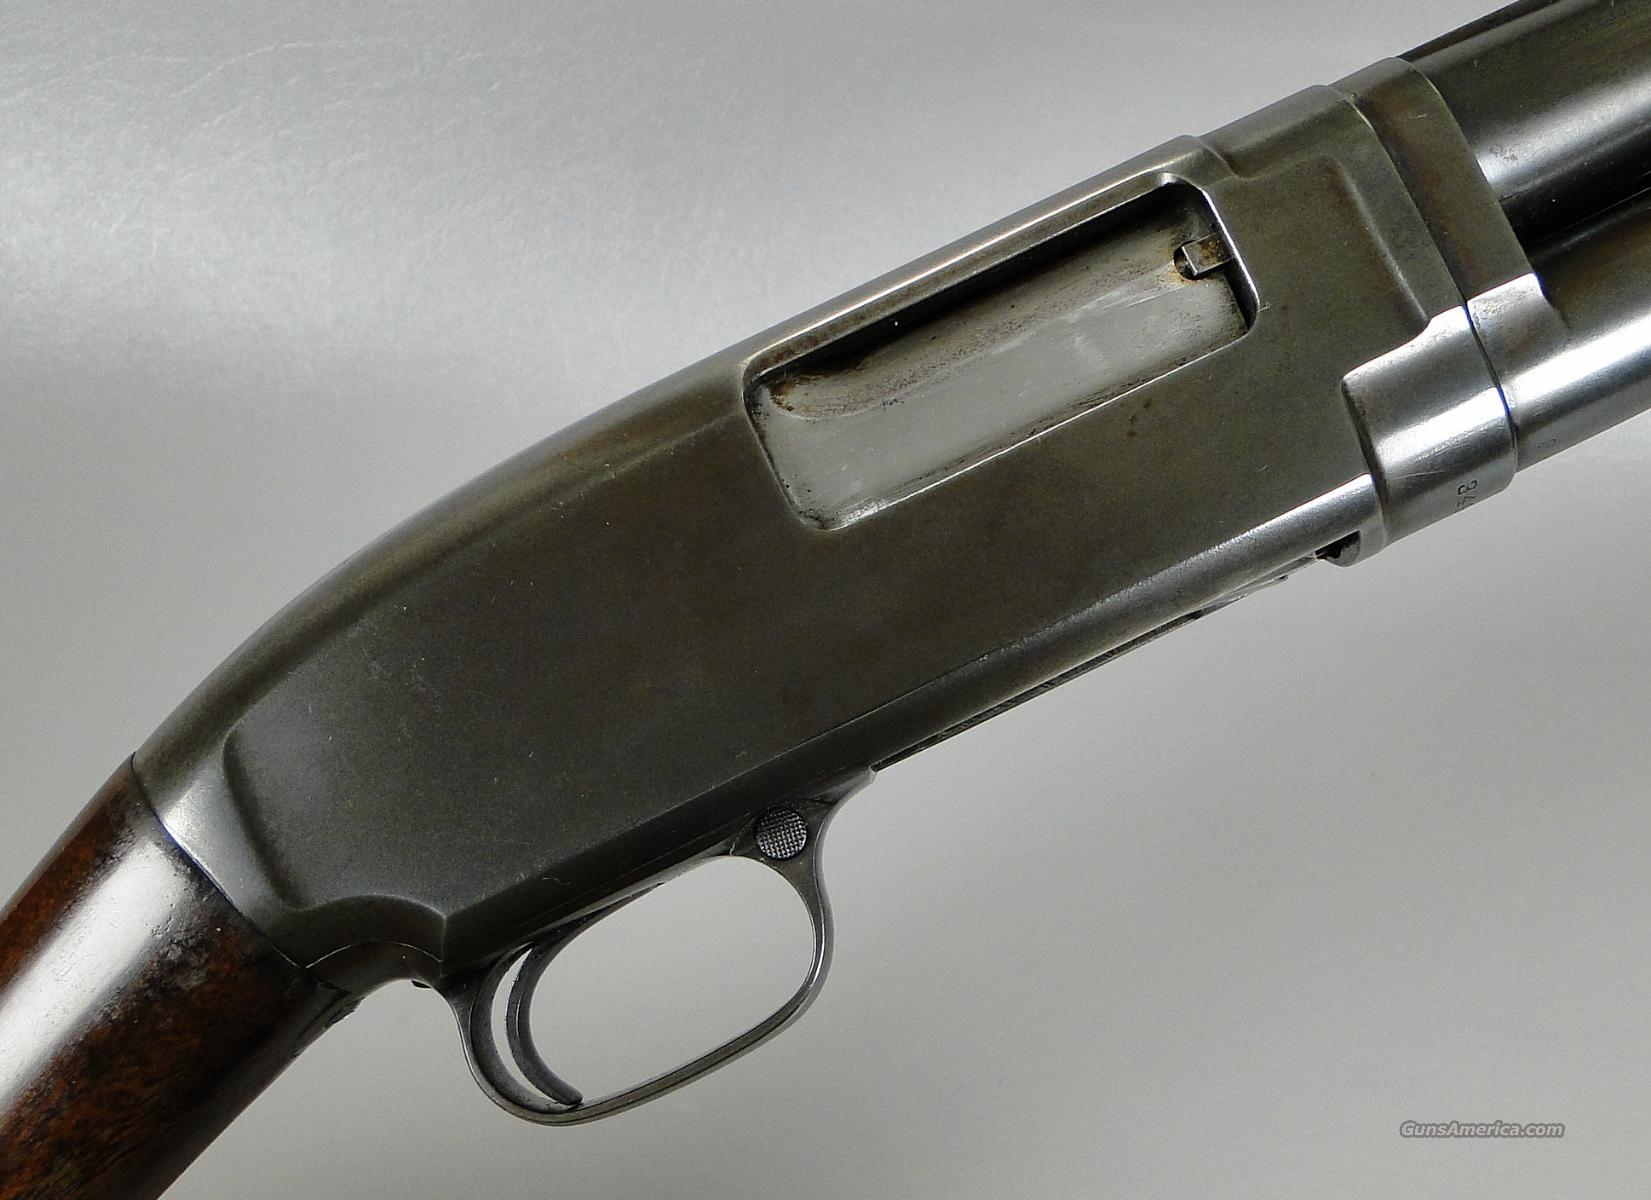 Very Nice 1920s Winchester Model 12 Shotgun in 12 Gauge with 28 Inch FC Barrel  Guns > Shotguns > Winchester Shotguns - Modern > Pump Action > Hunting